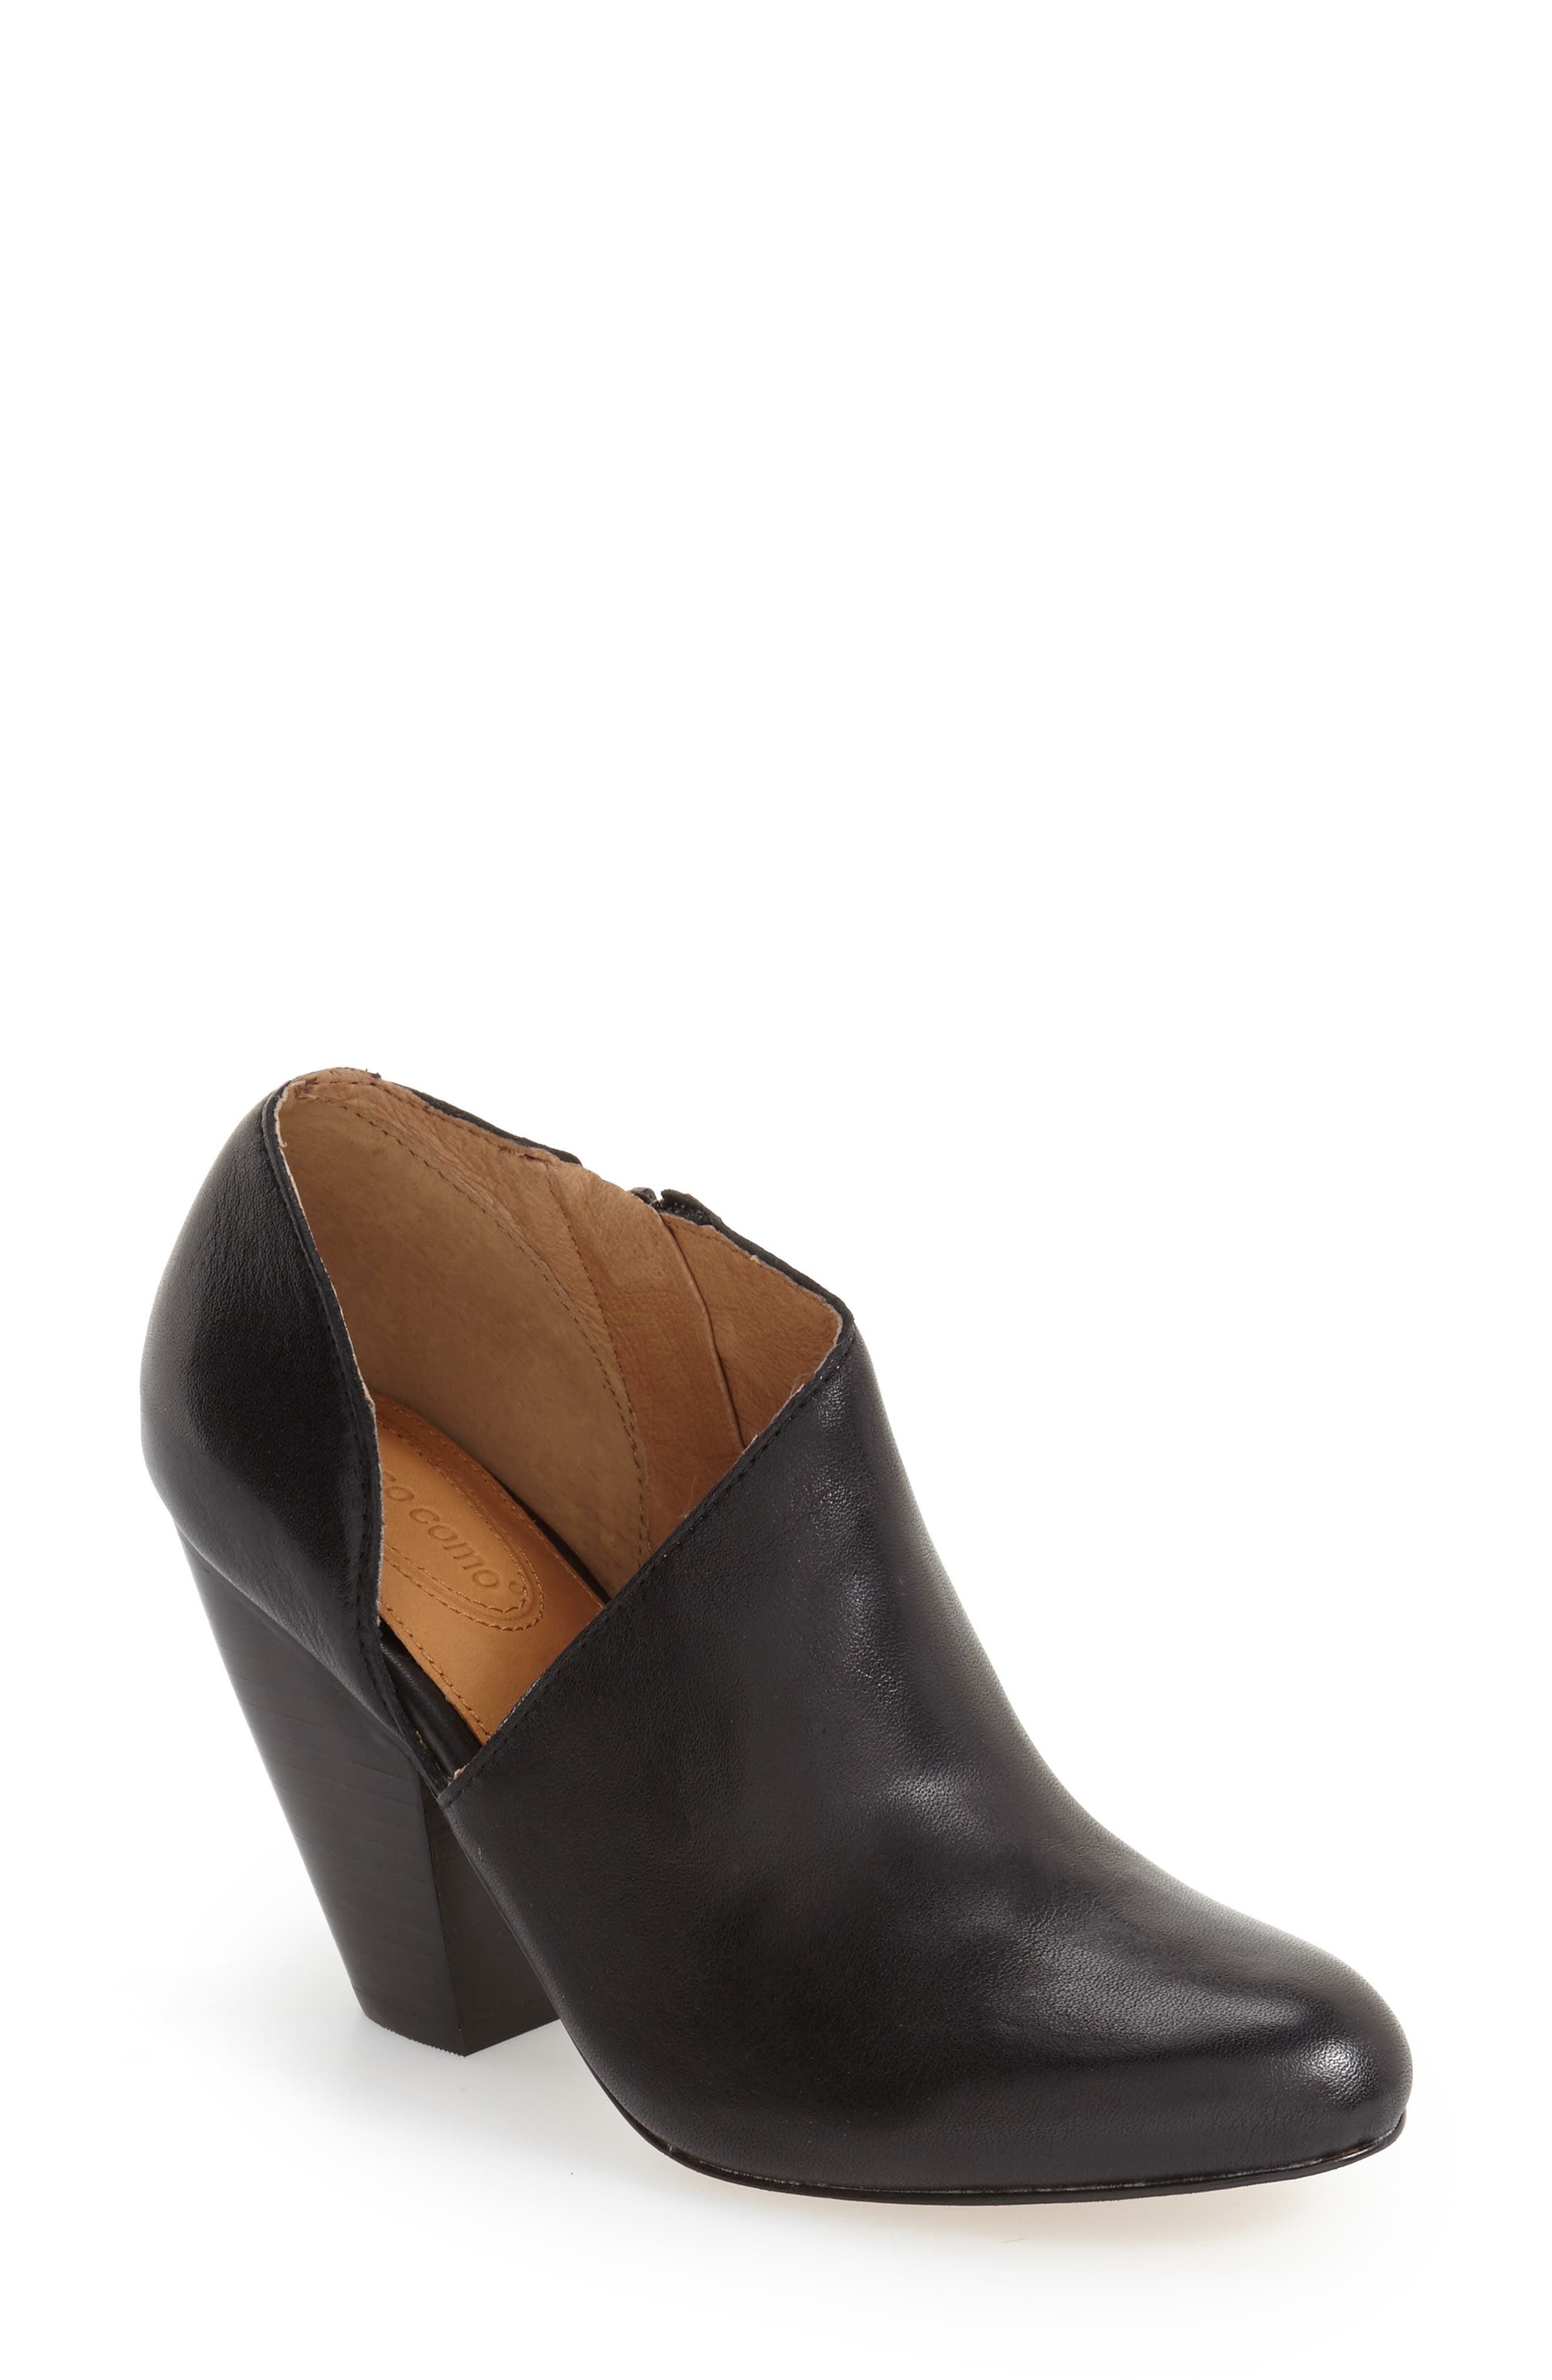 'Yonkers' Almond Toe Cutout Bootie,                             Alternate thumbnail 5, color,                             004